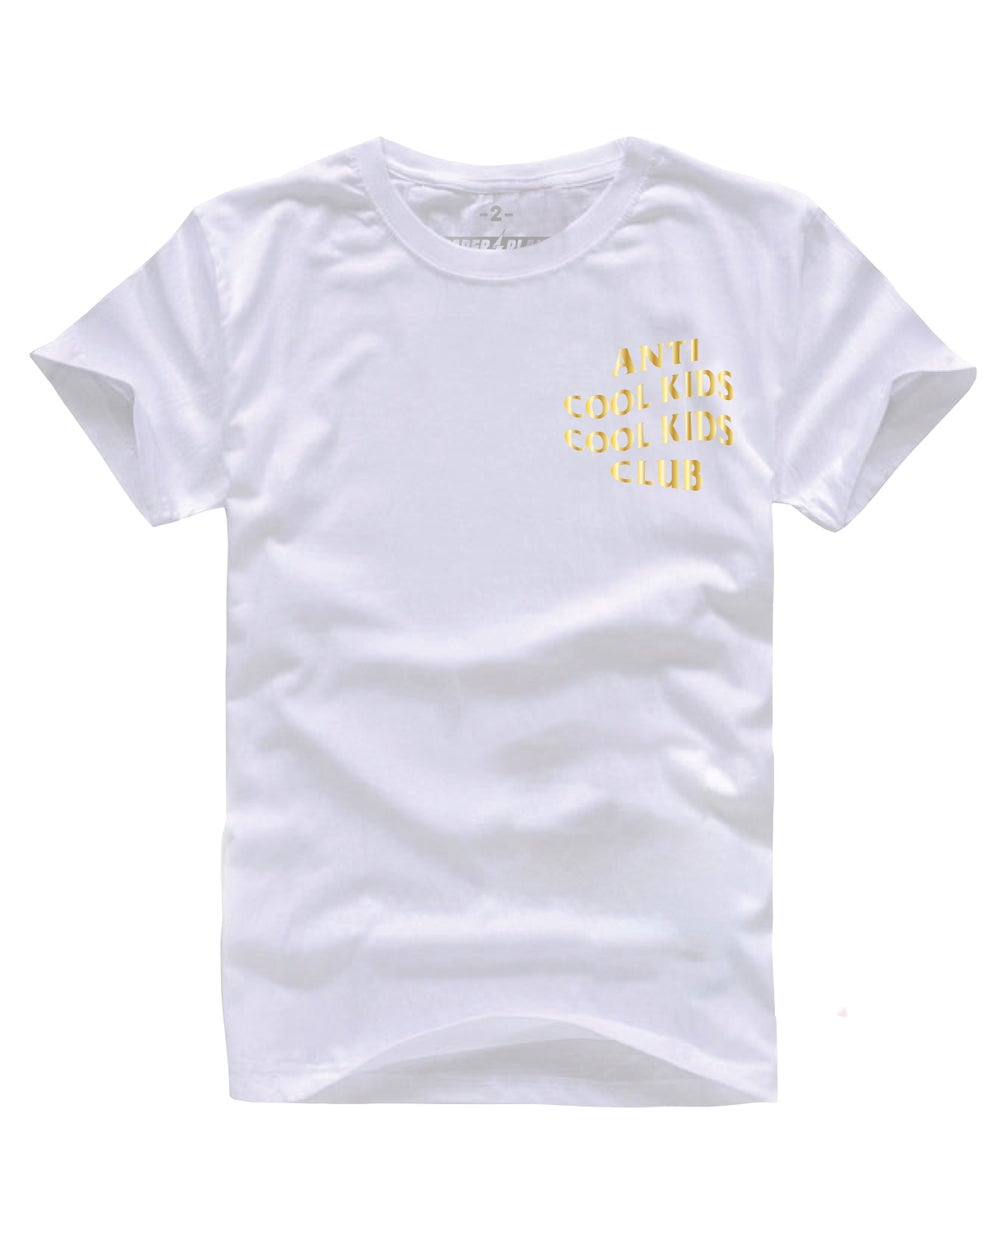 ANTI COOL KIDS TEE GOLD/WHITE